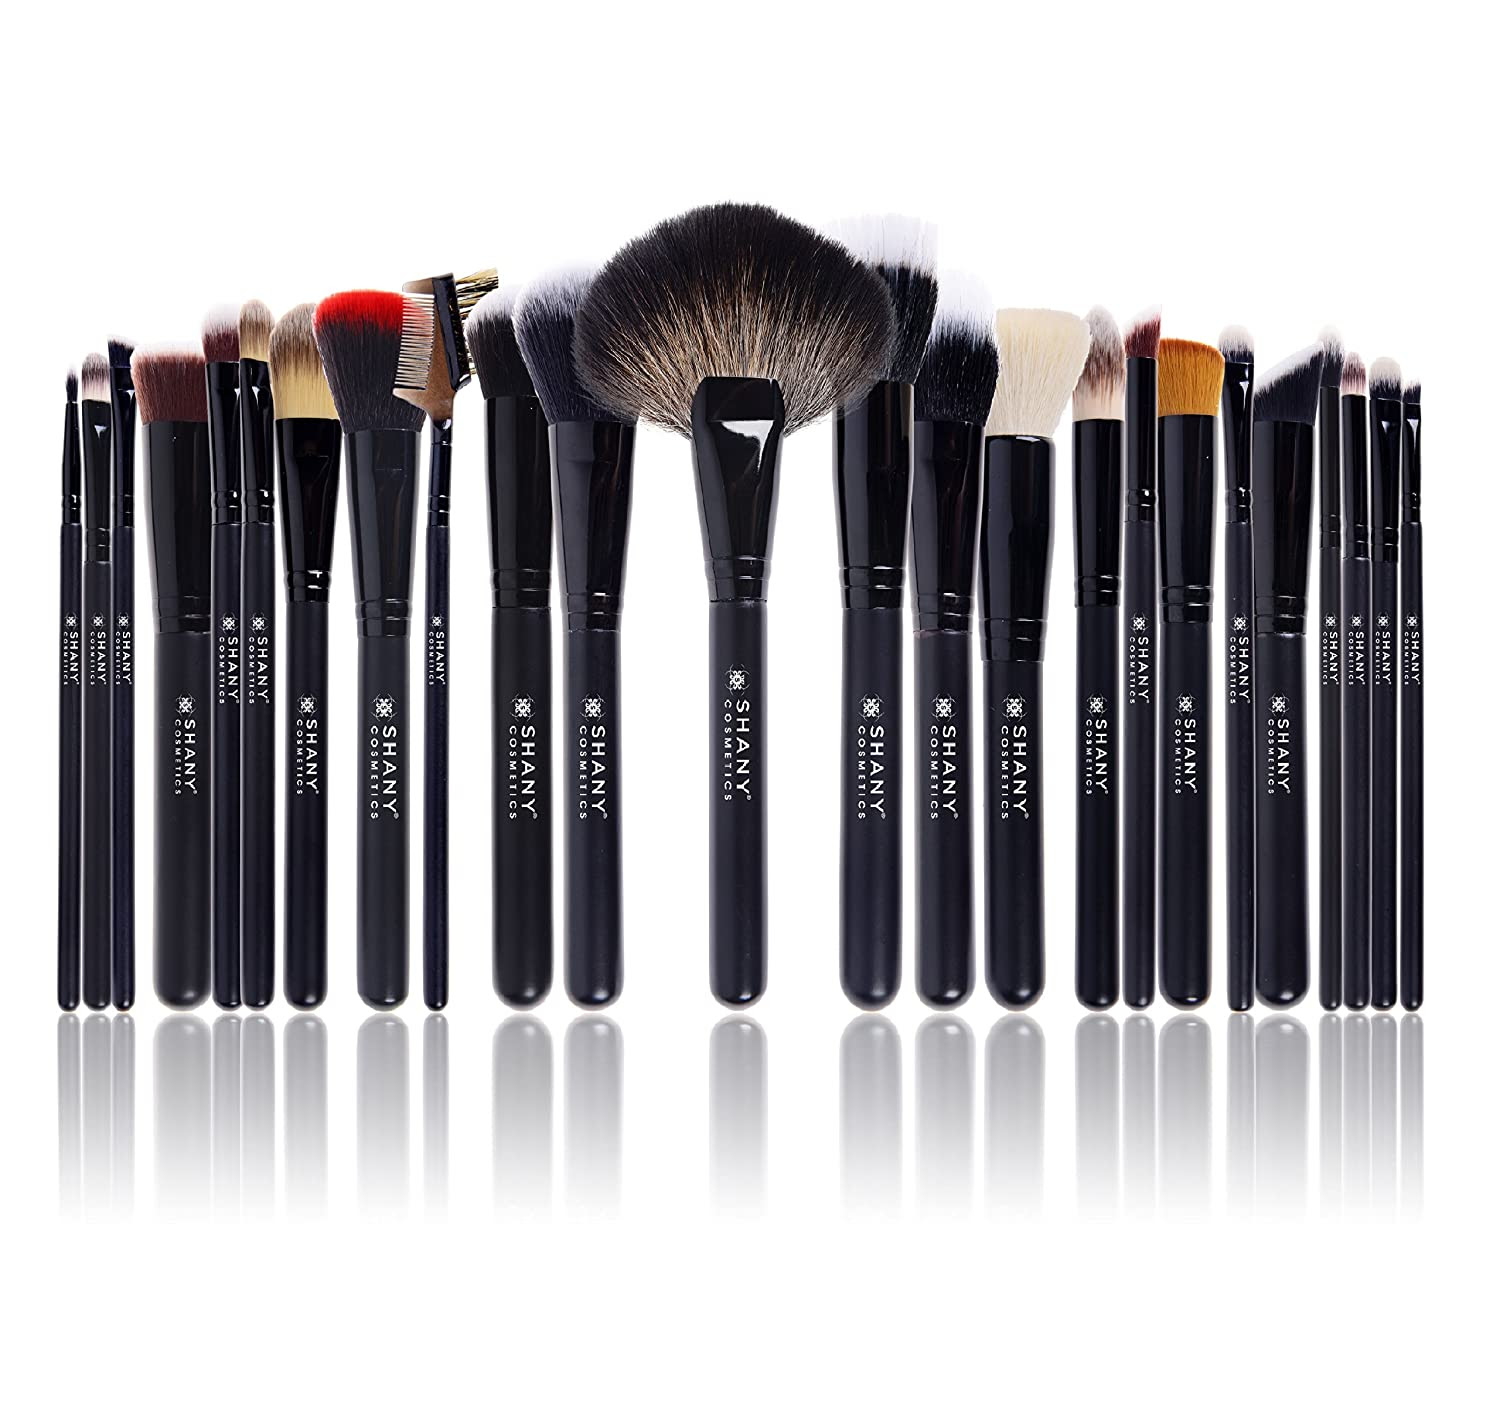 2014 Makeup Gift Guide - SHANY Pro Brushes